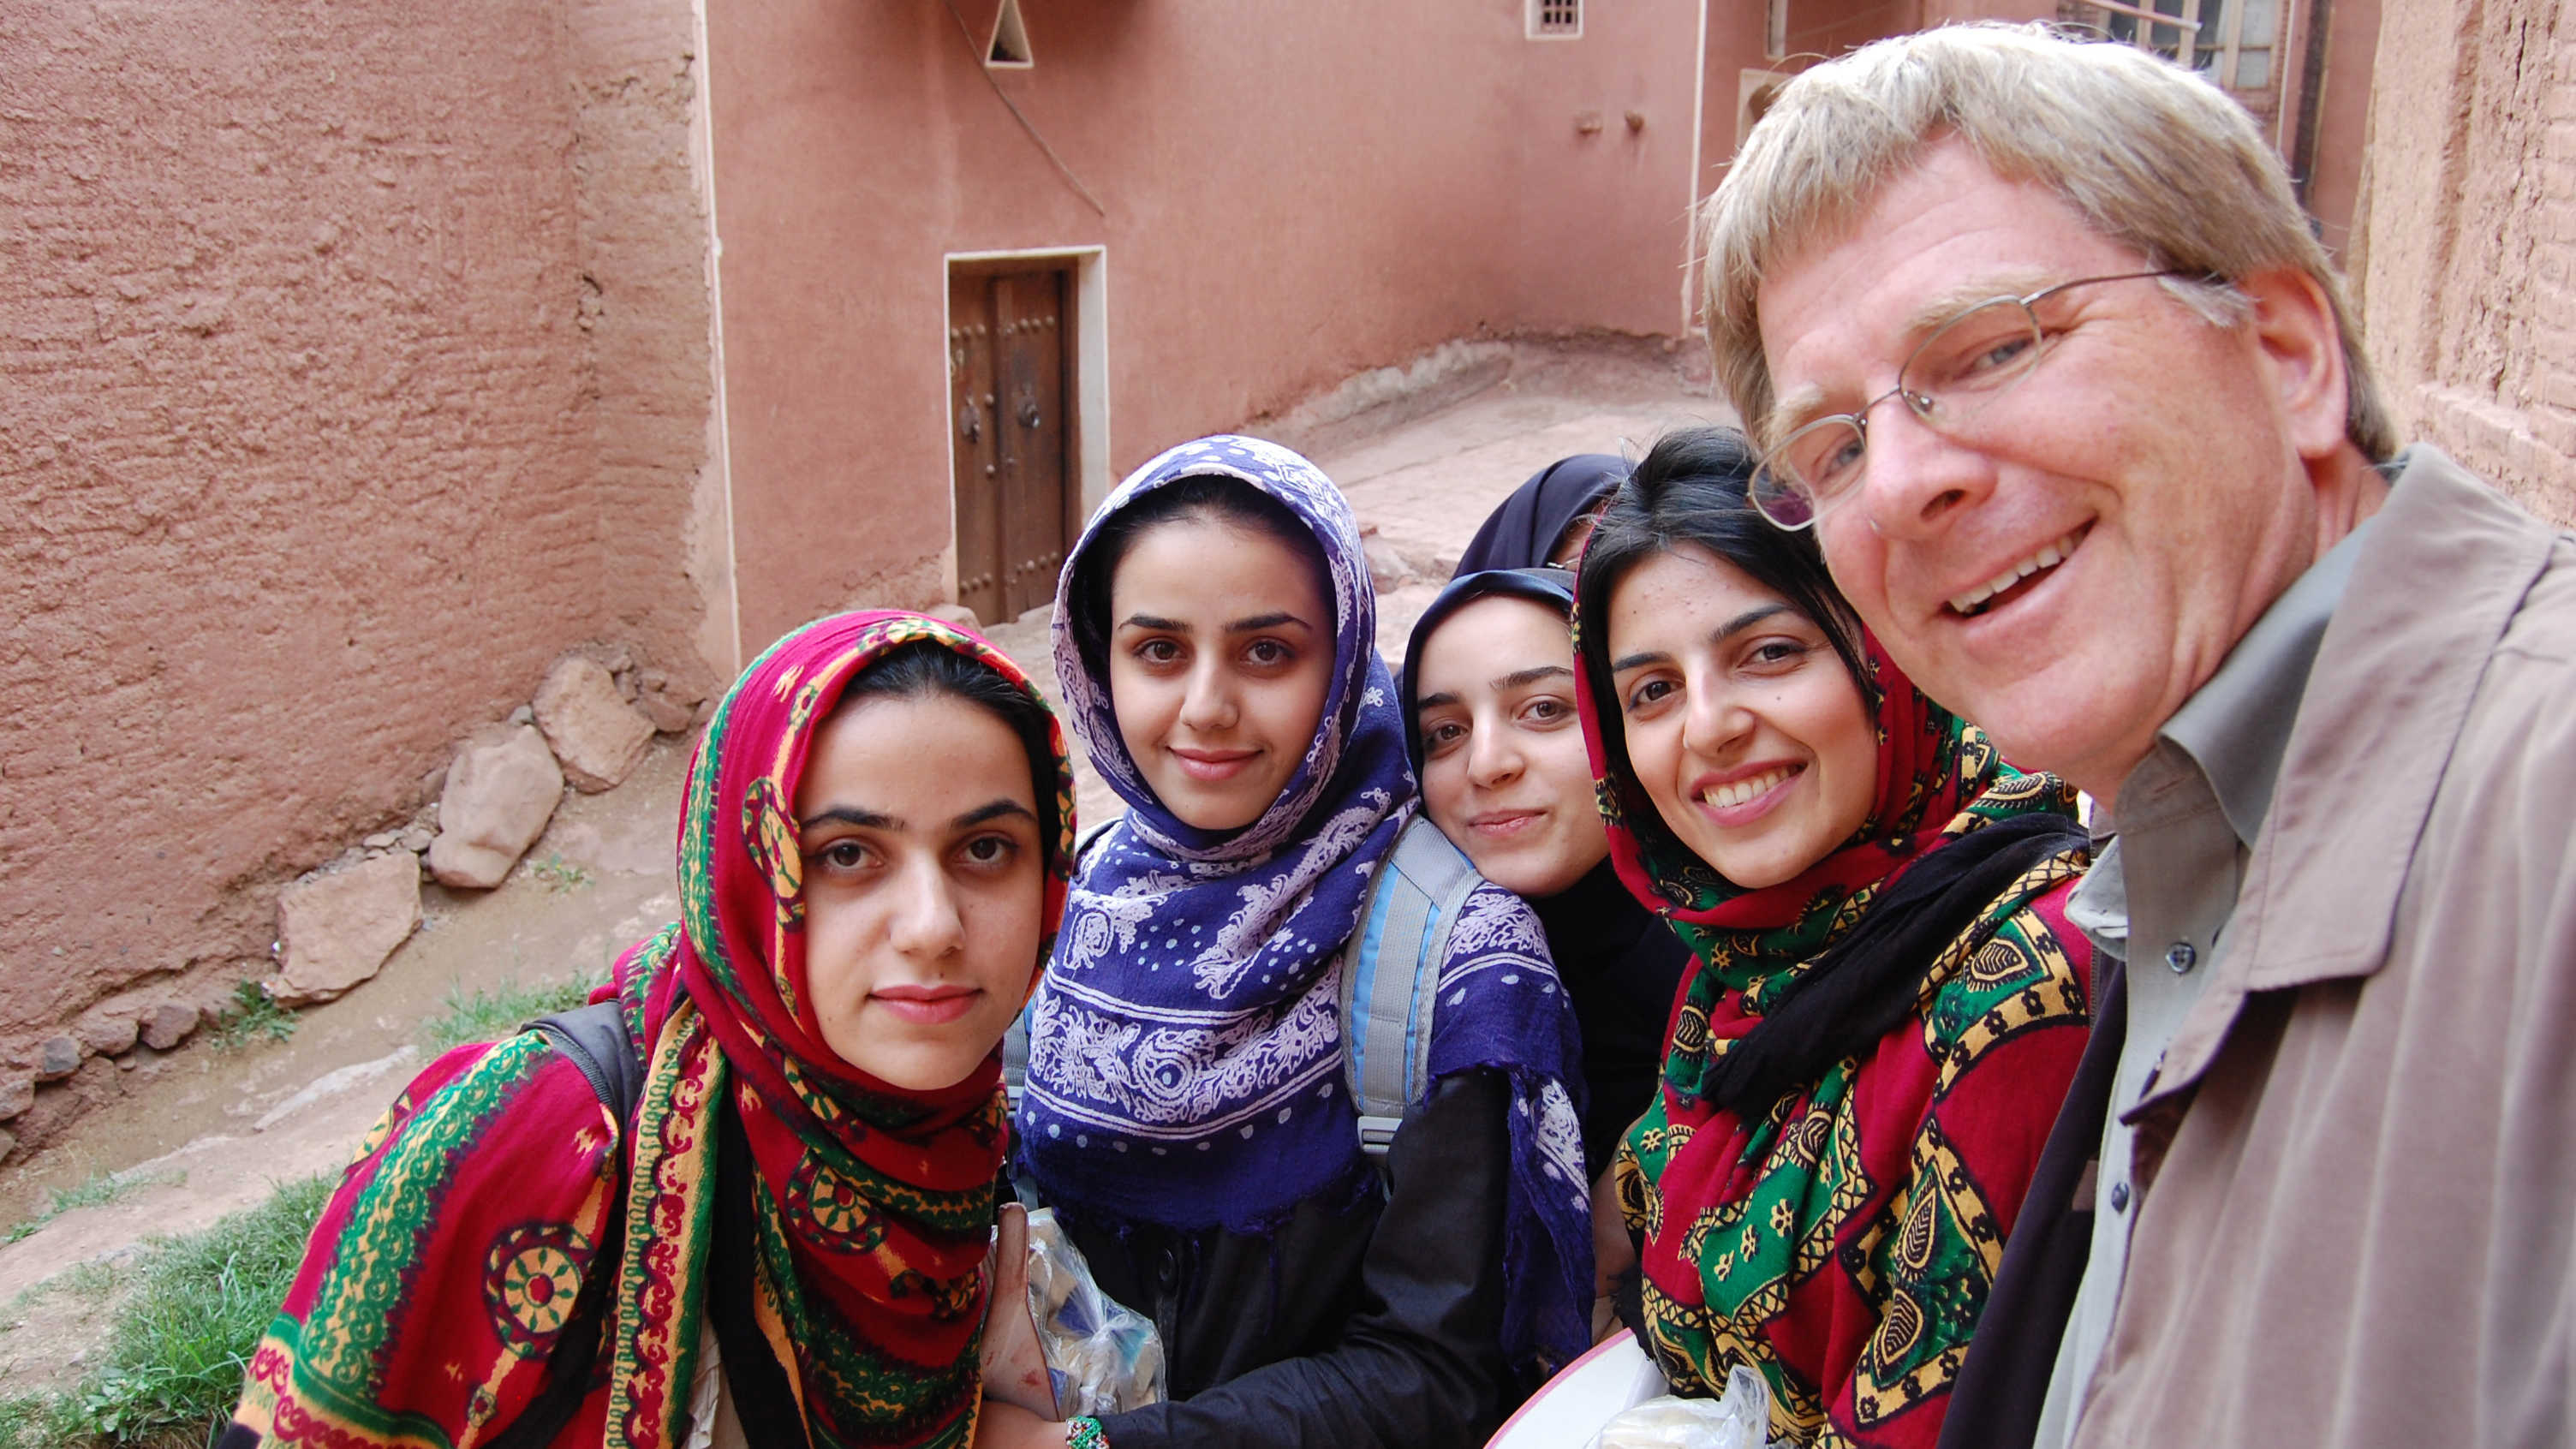 Rick poses with local girls in Iran